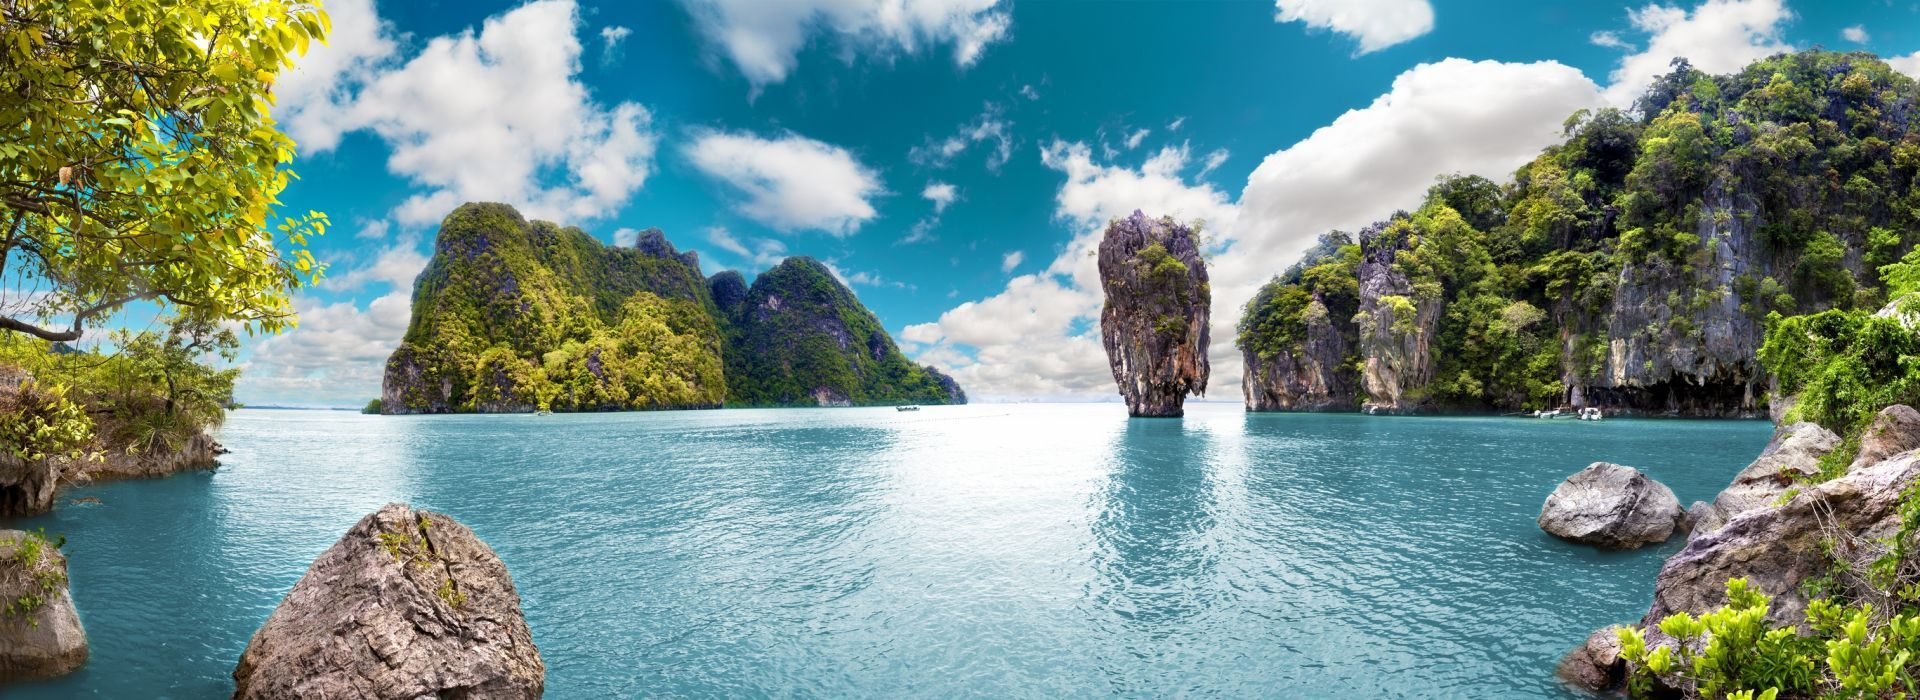 Party and nightlife Tours in Phuket